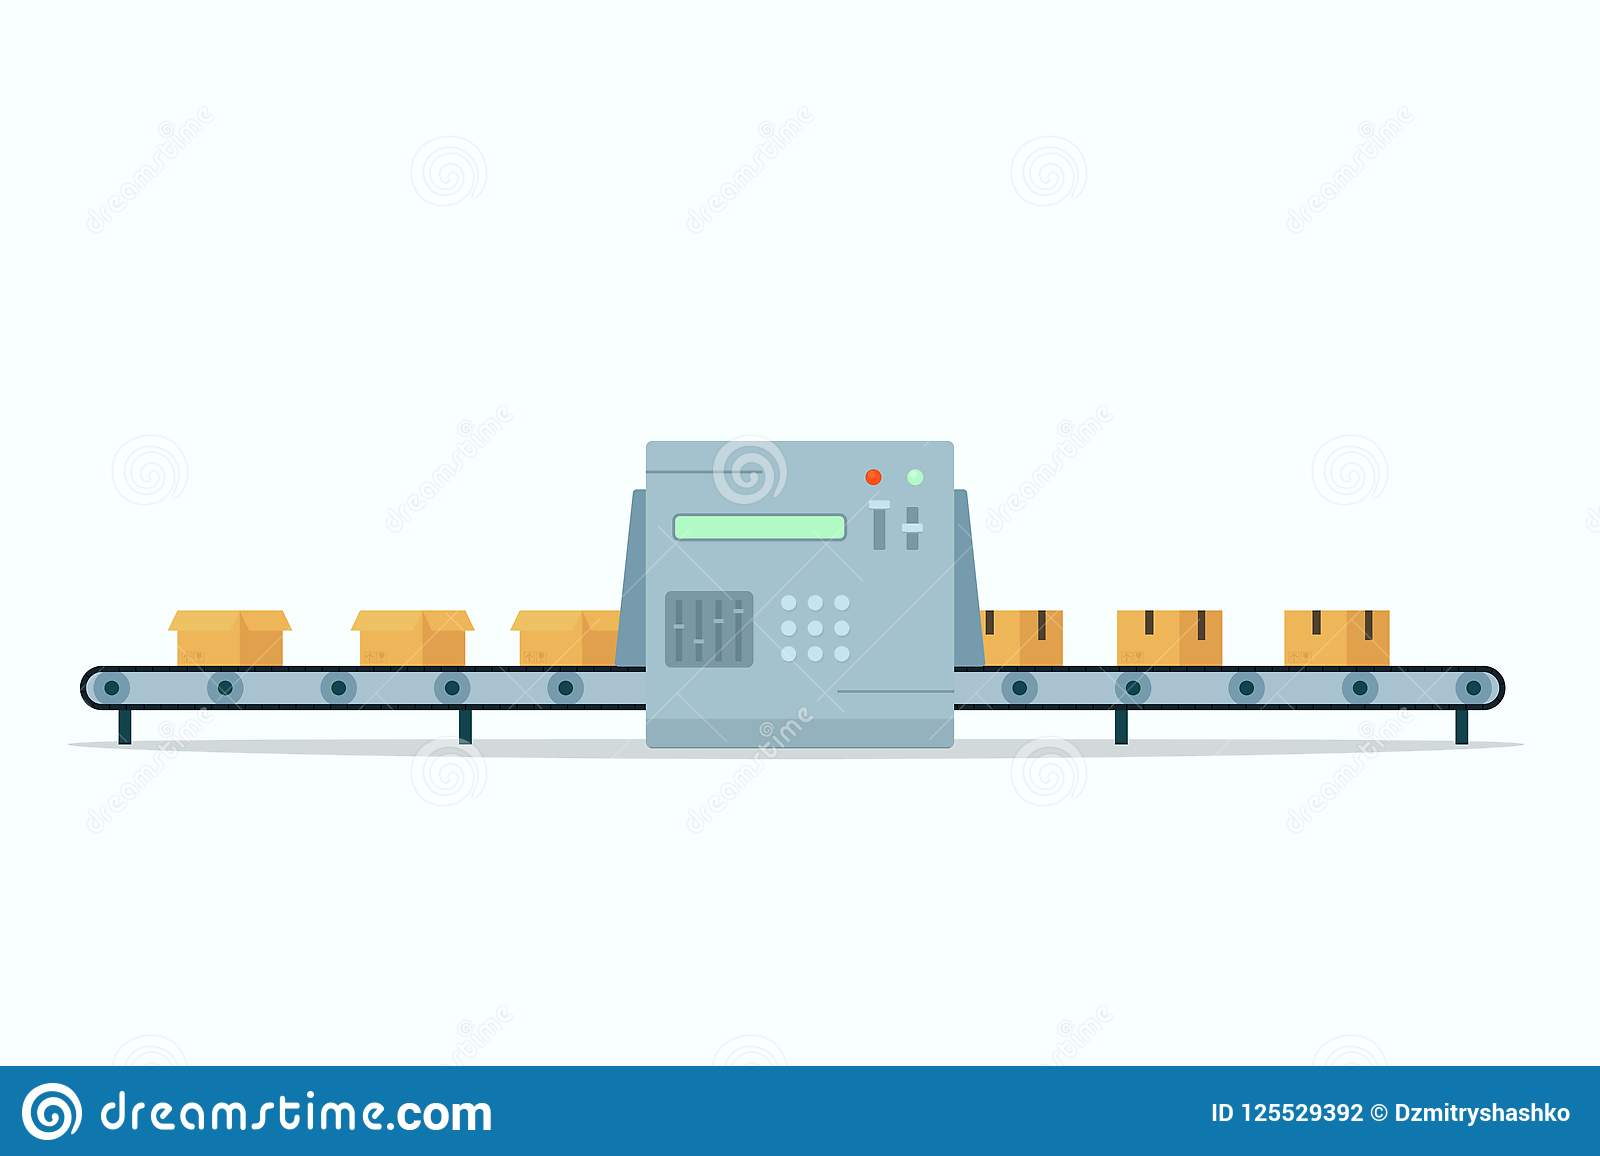 Conveyor Belt icon stock vector. Illustration of automatic.